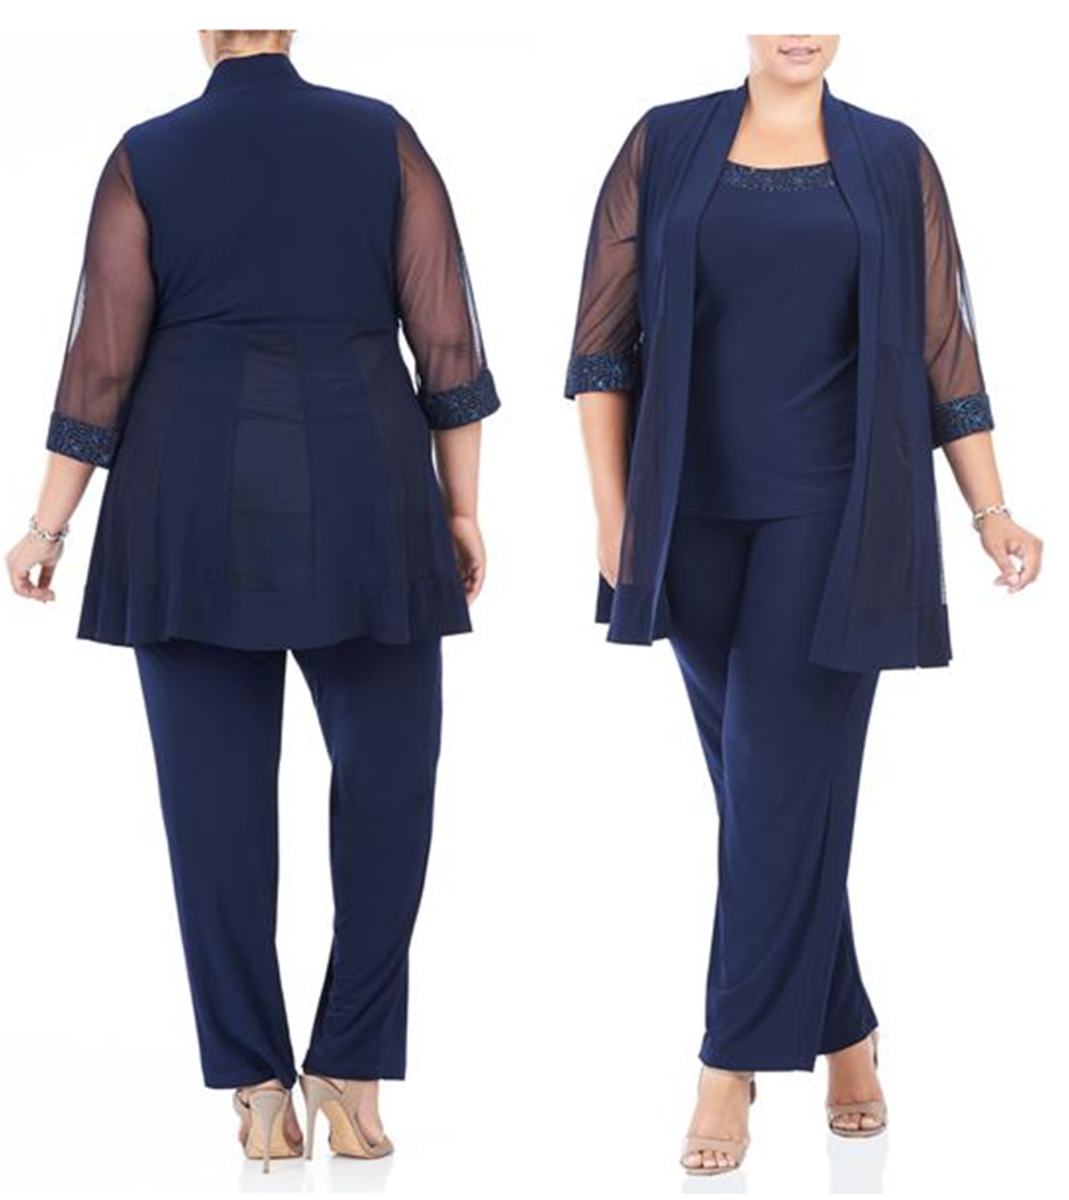 3 piece pantsuit with glitter details and mesh sleeves